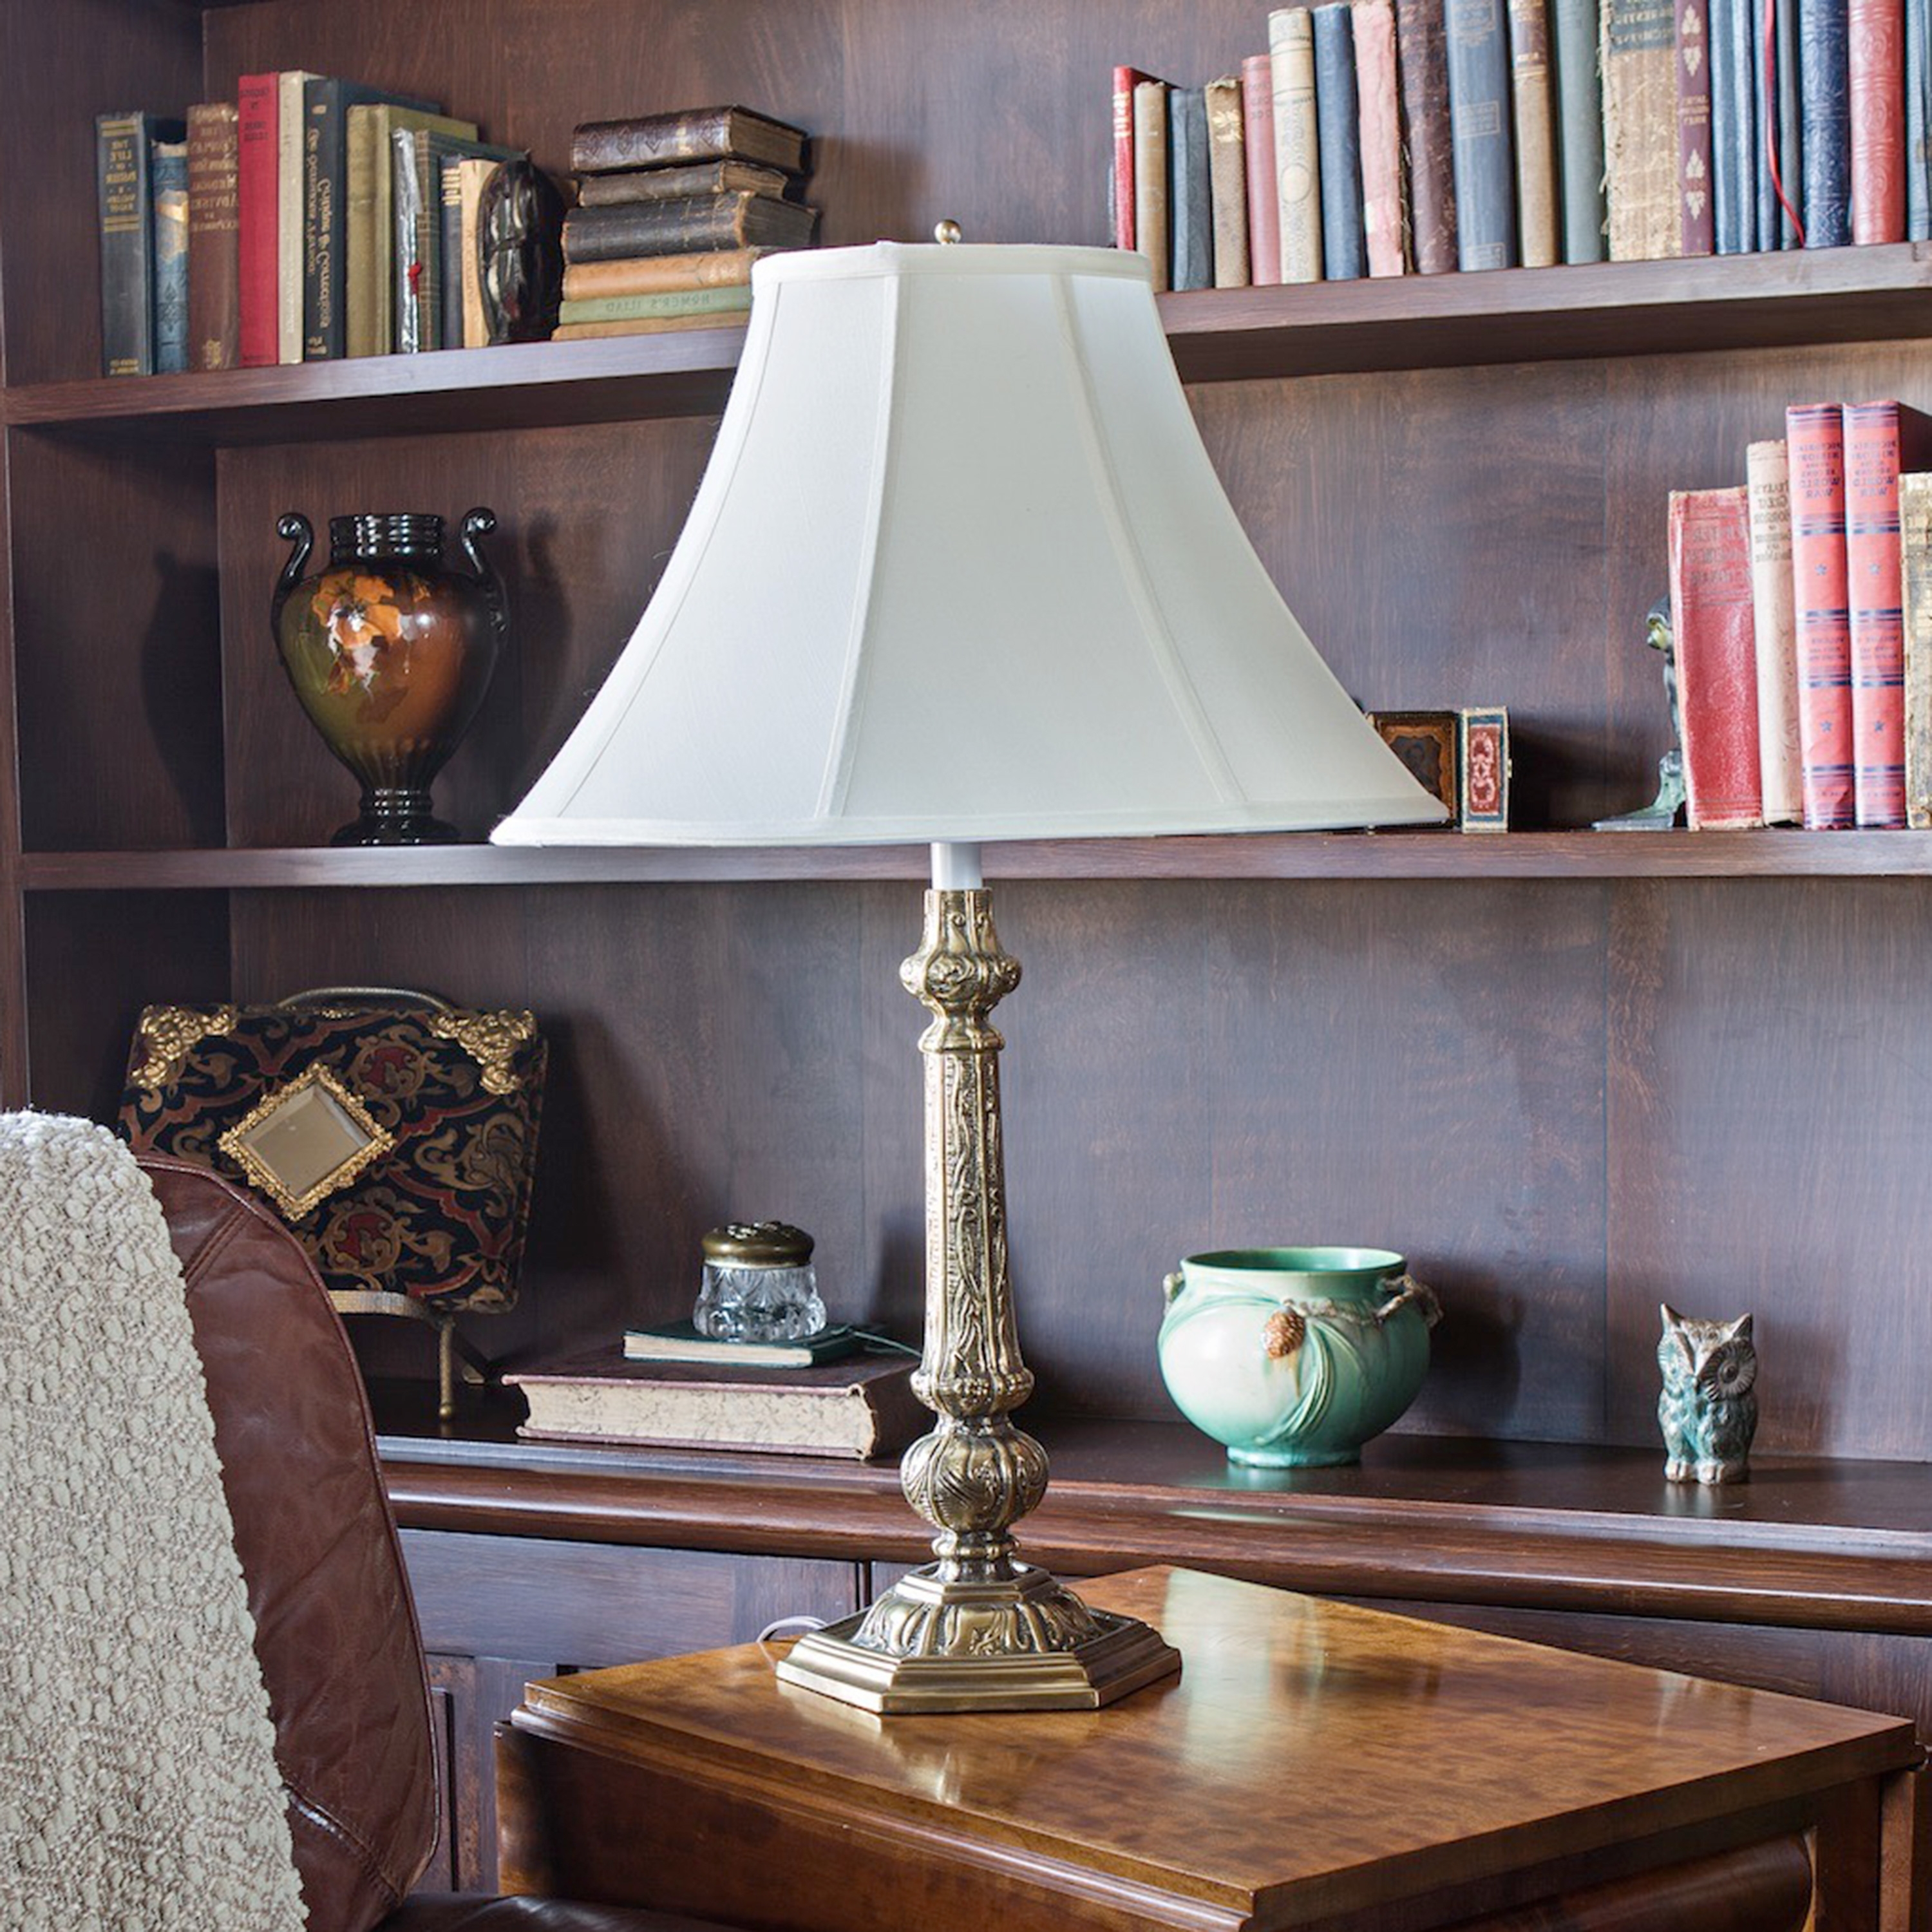 Fashionable 71 Most Ace Table Lamps Touch Battery Operated White Lamp For Living Pertaining To Vintage Living Room Table Lamps (View 3 of 15)